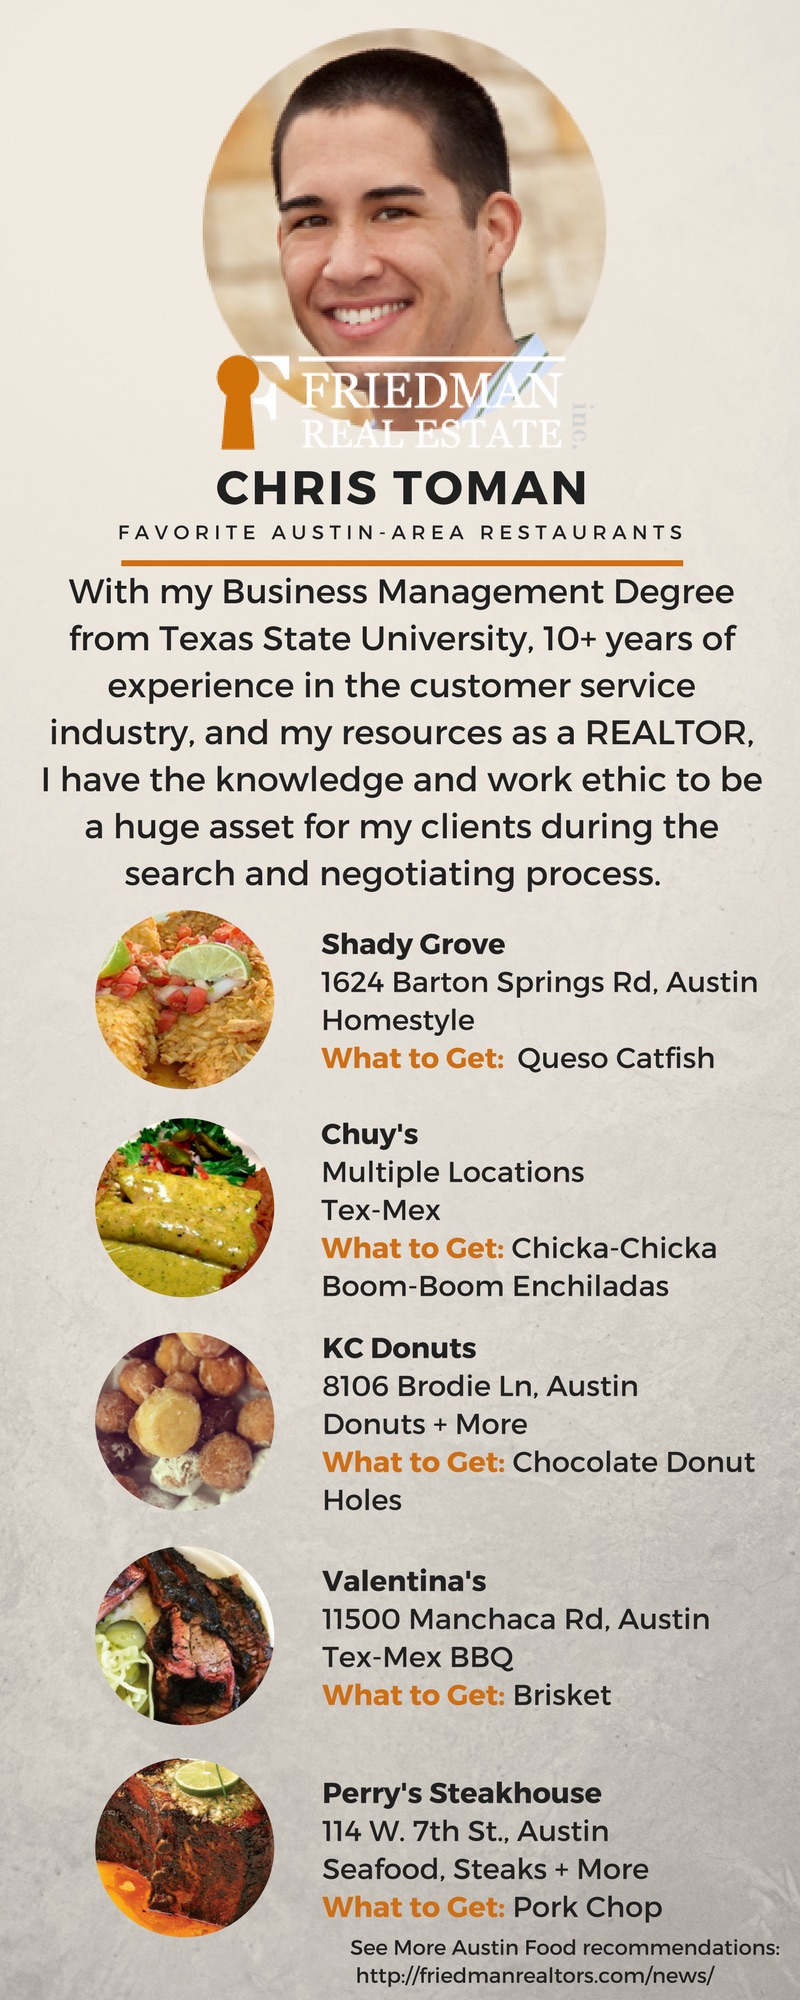 Best-Austin-Food-Chris-Toman-Friedman-Real-Estate